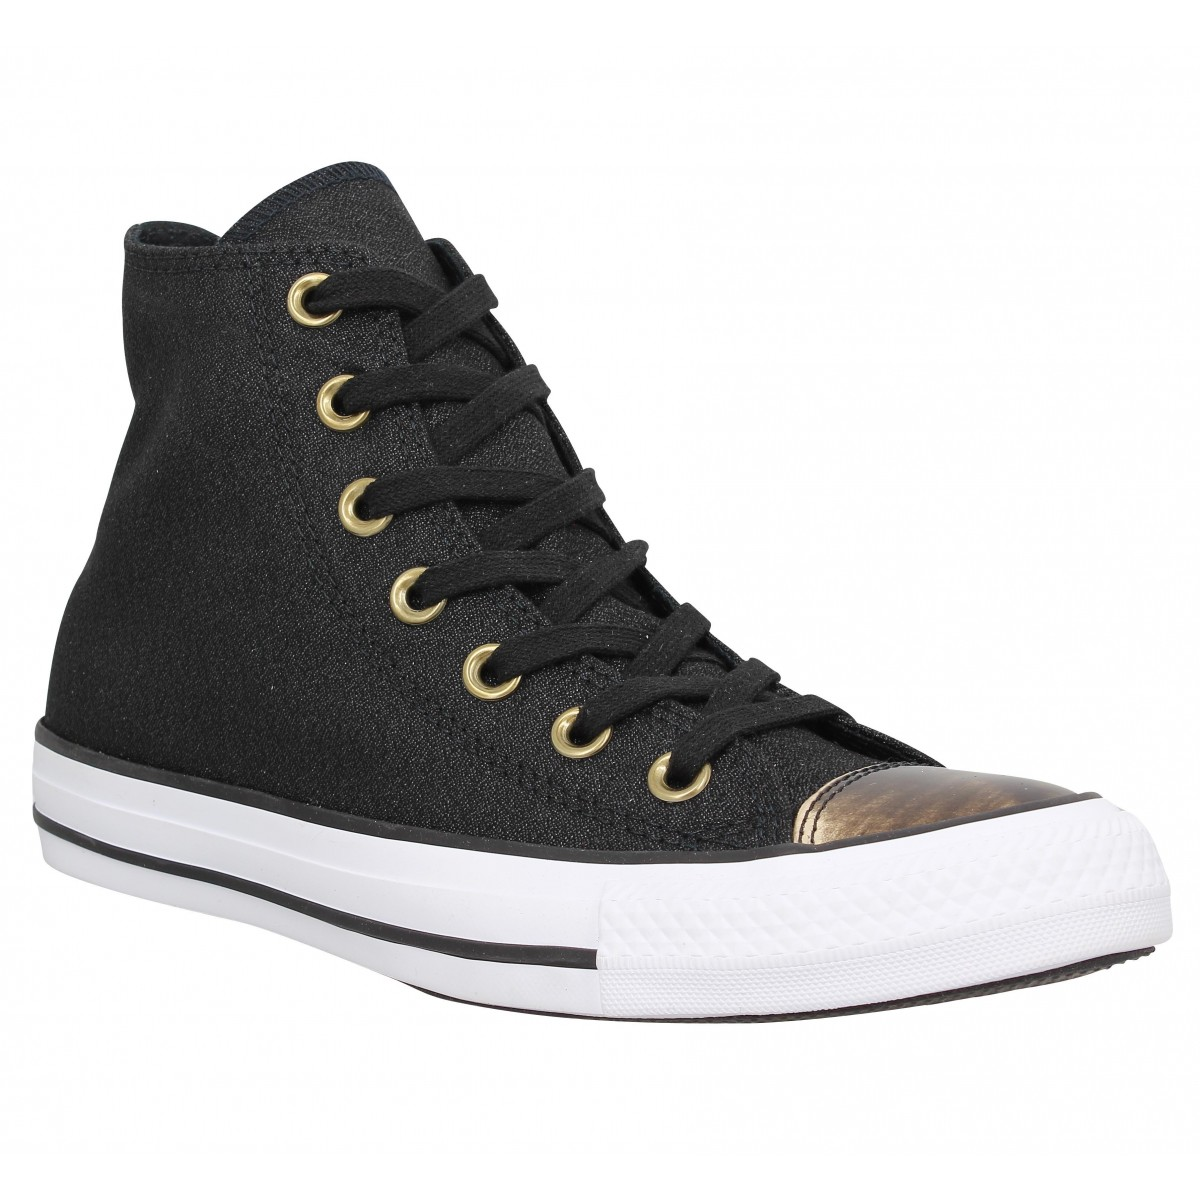 Baskets CONVERSE Chuck Taylor All Star Brush Off Femme Noir